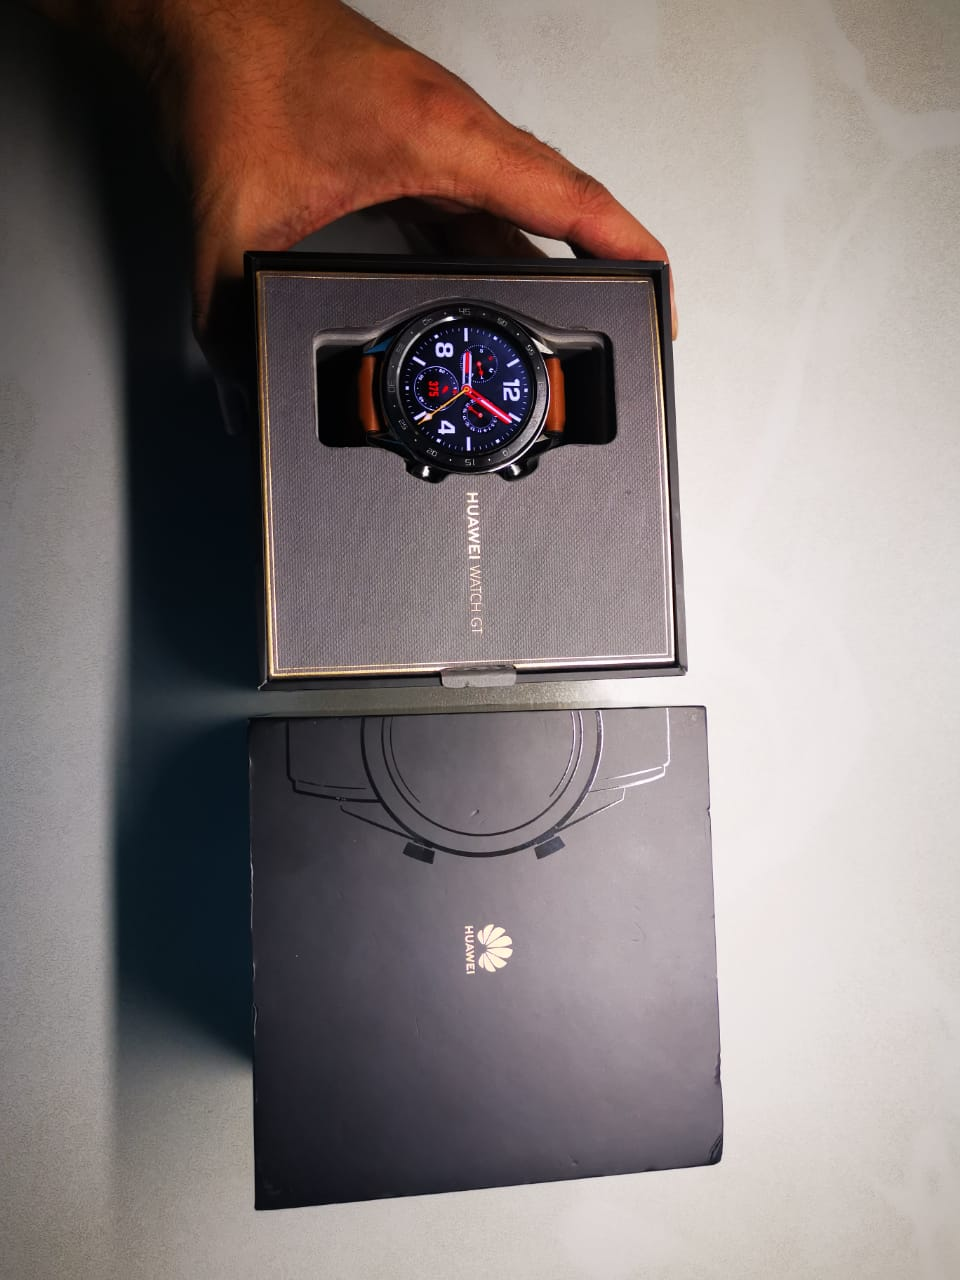 Huawei gt watch brand new in the box R3999 & Samsung gear s3 frontier